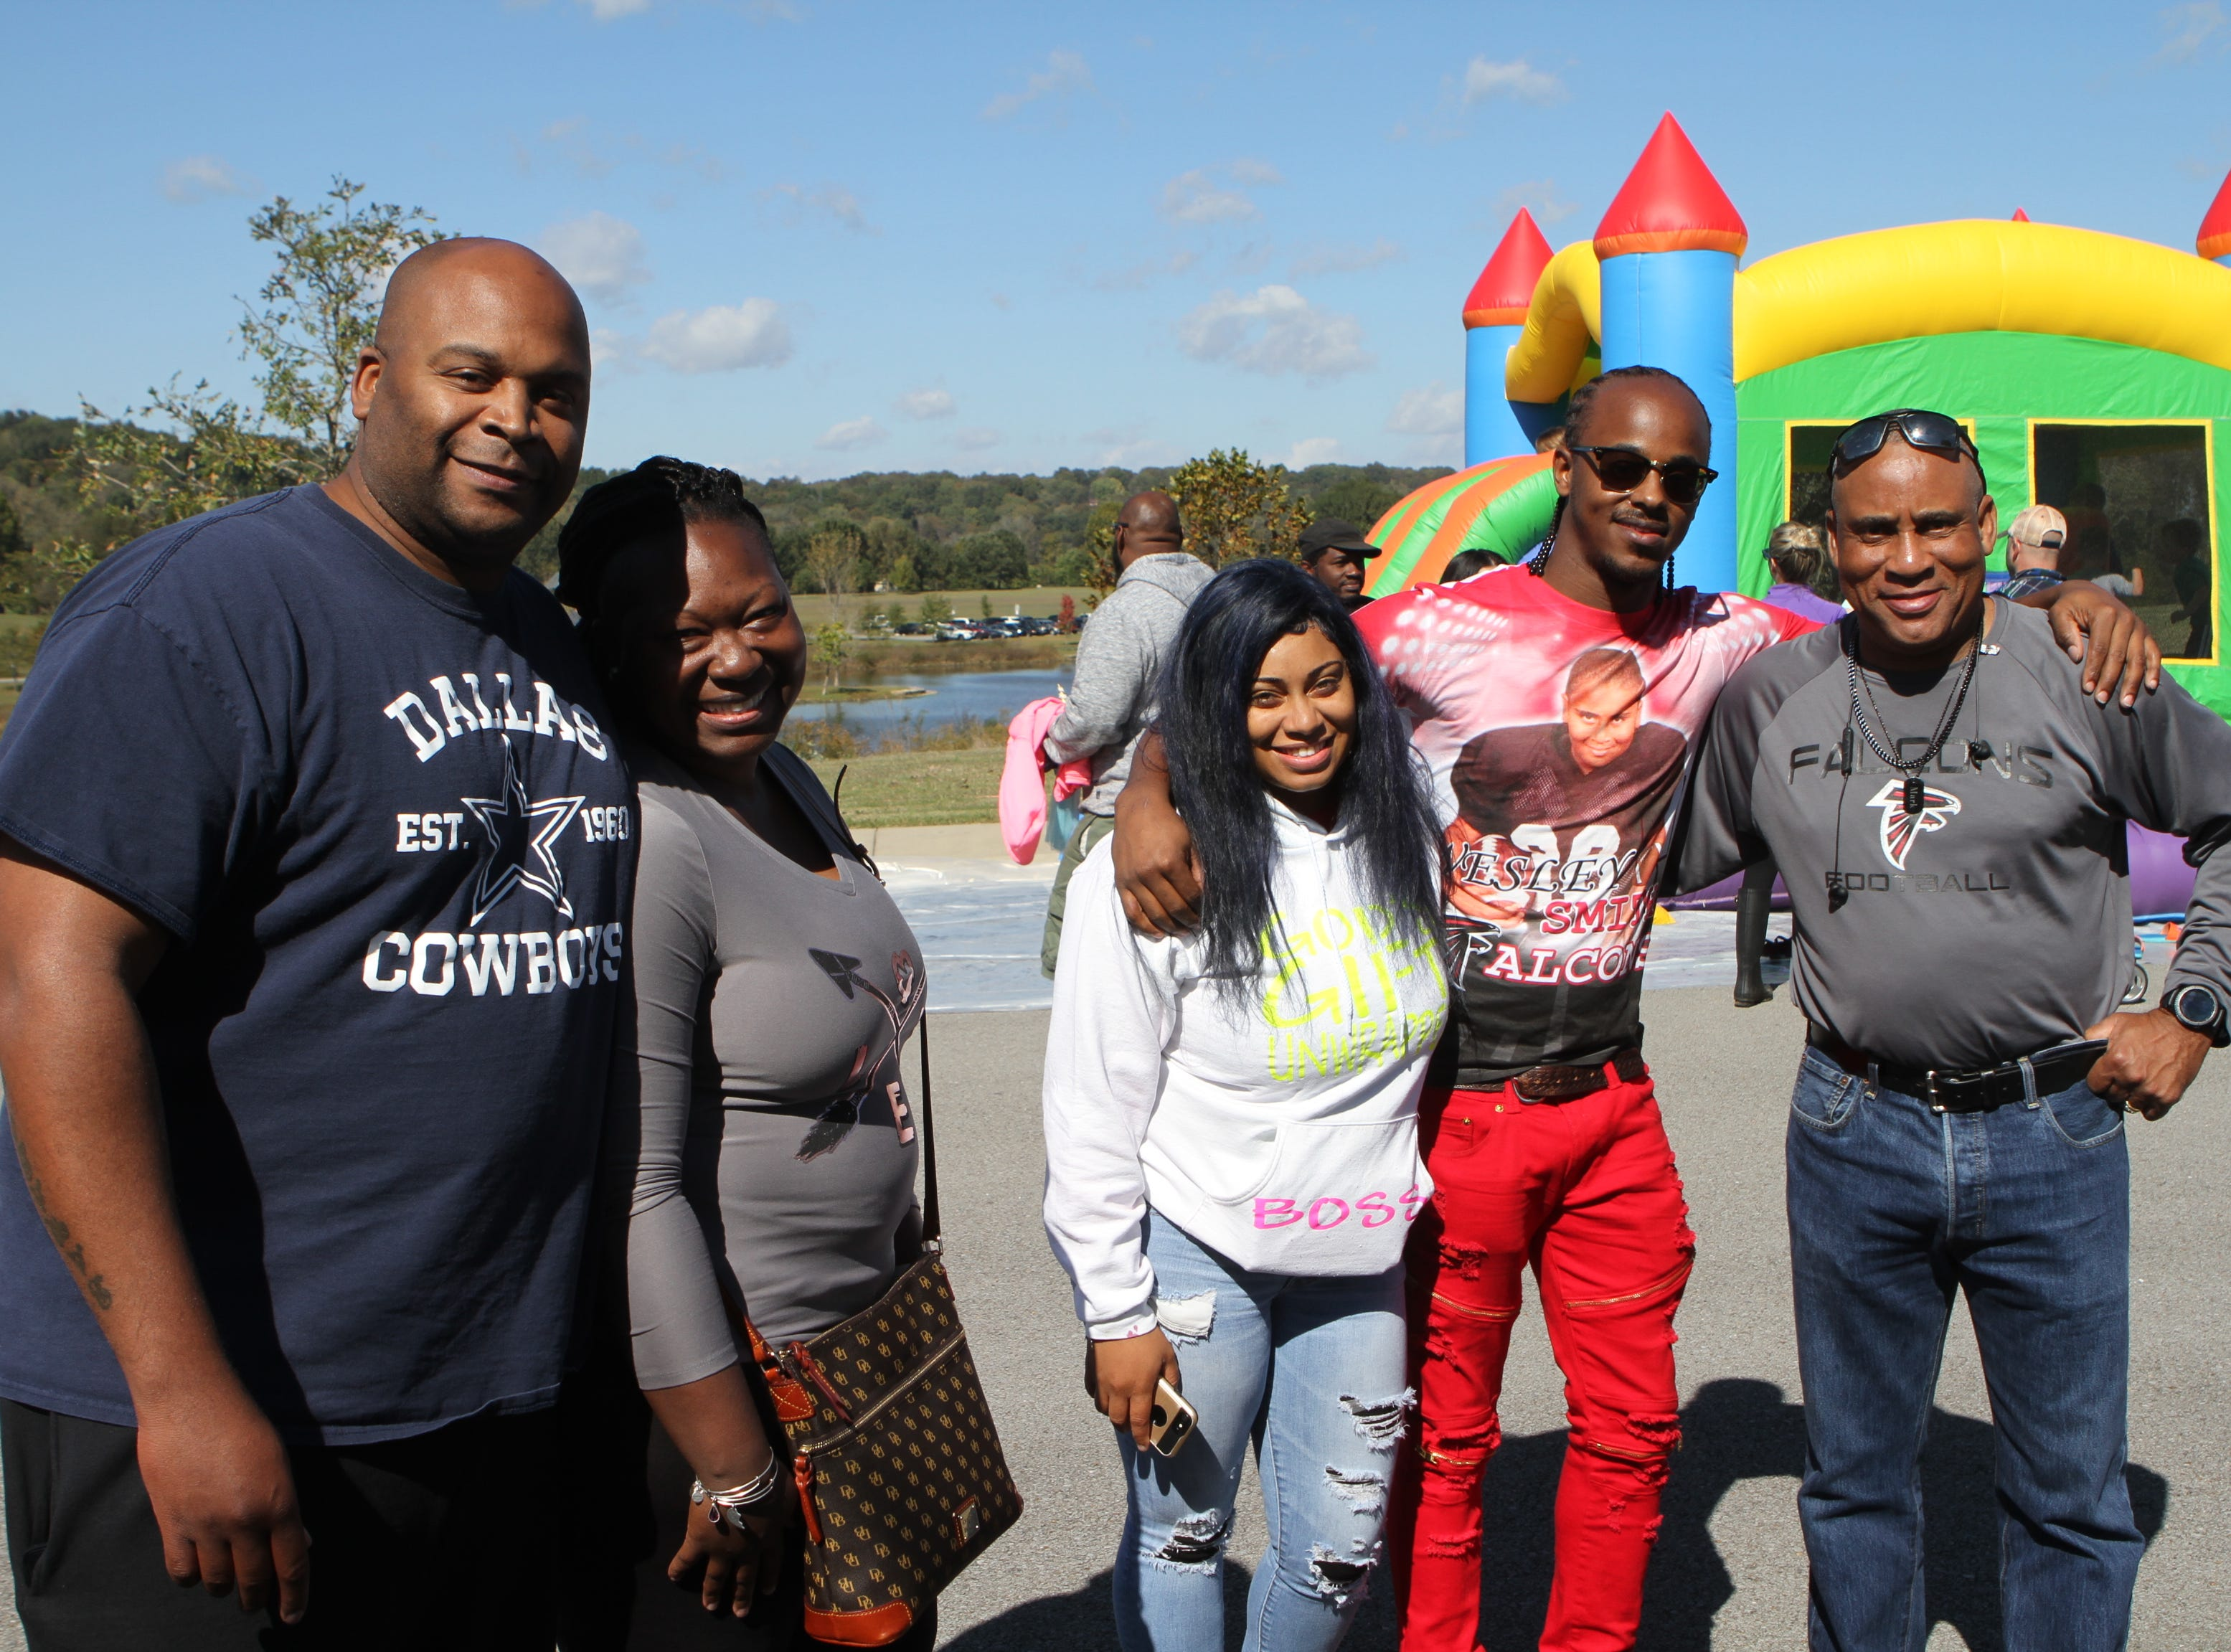 Clarksville Parks and Recreation hosted its annual BBQ Bash at Liberty Park on Saturday, October 20, 2018.